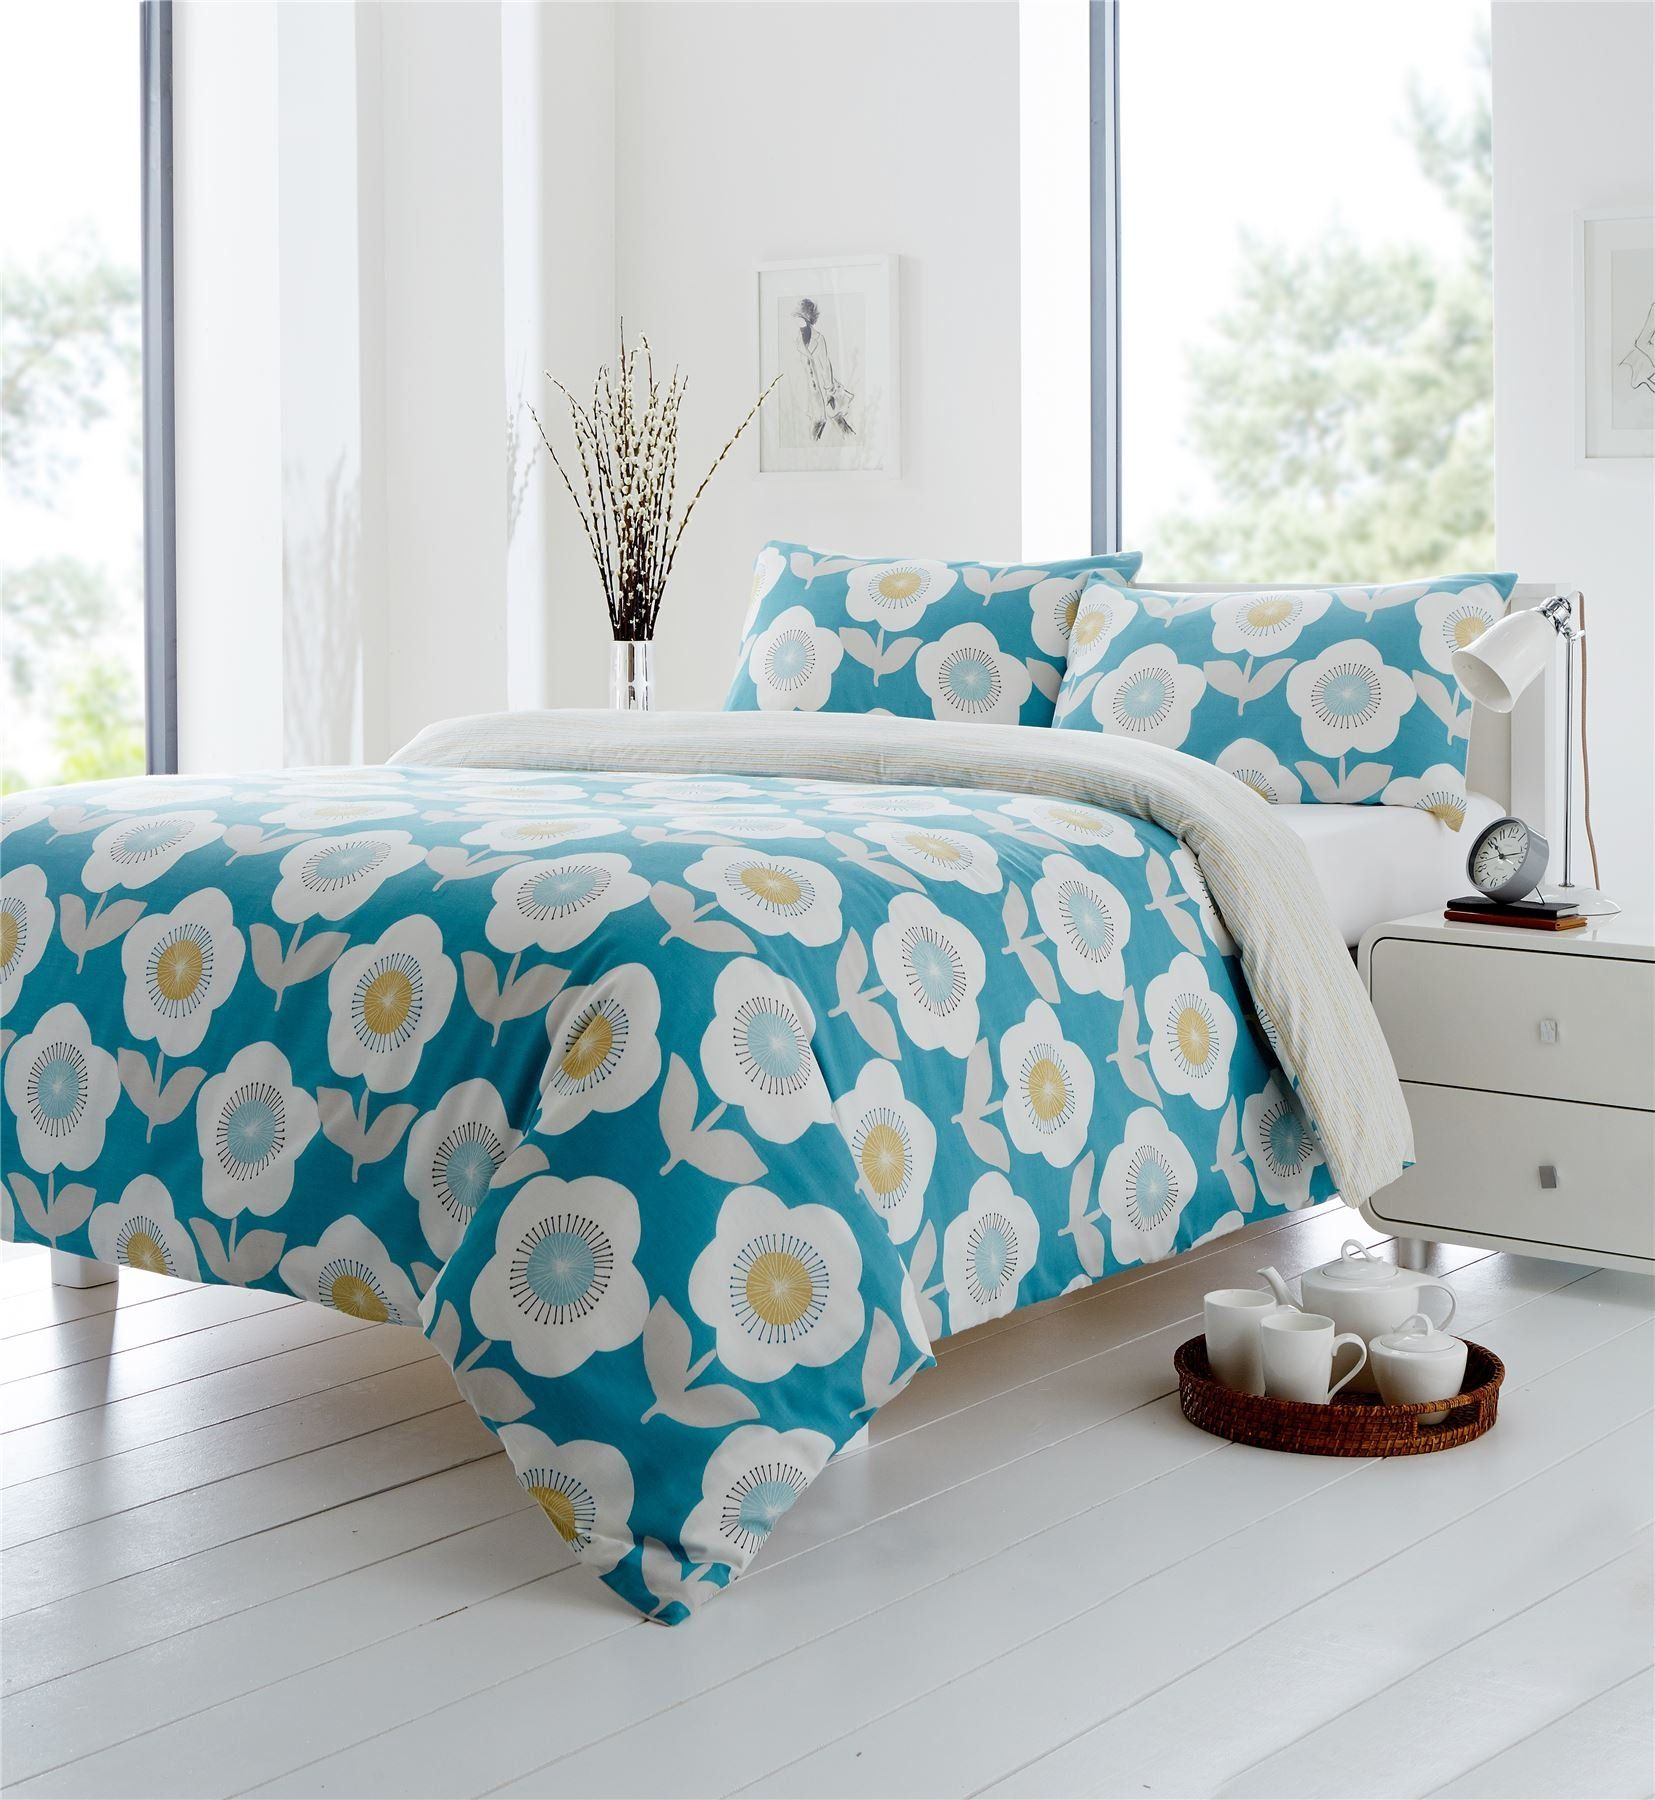 buy fusion ellon teal quilt cover set double from our double duvet covers u0026 bedding sets range at tesco direct we stock a great range of products at